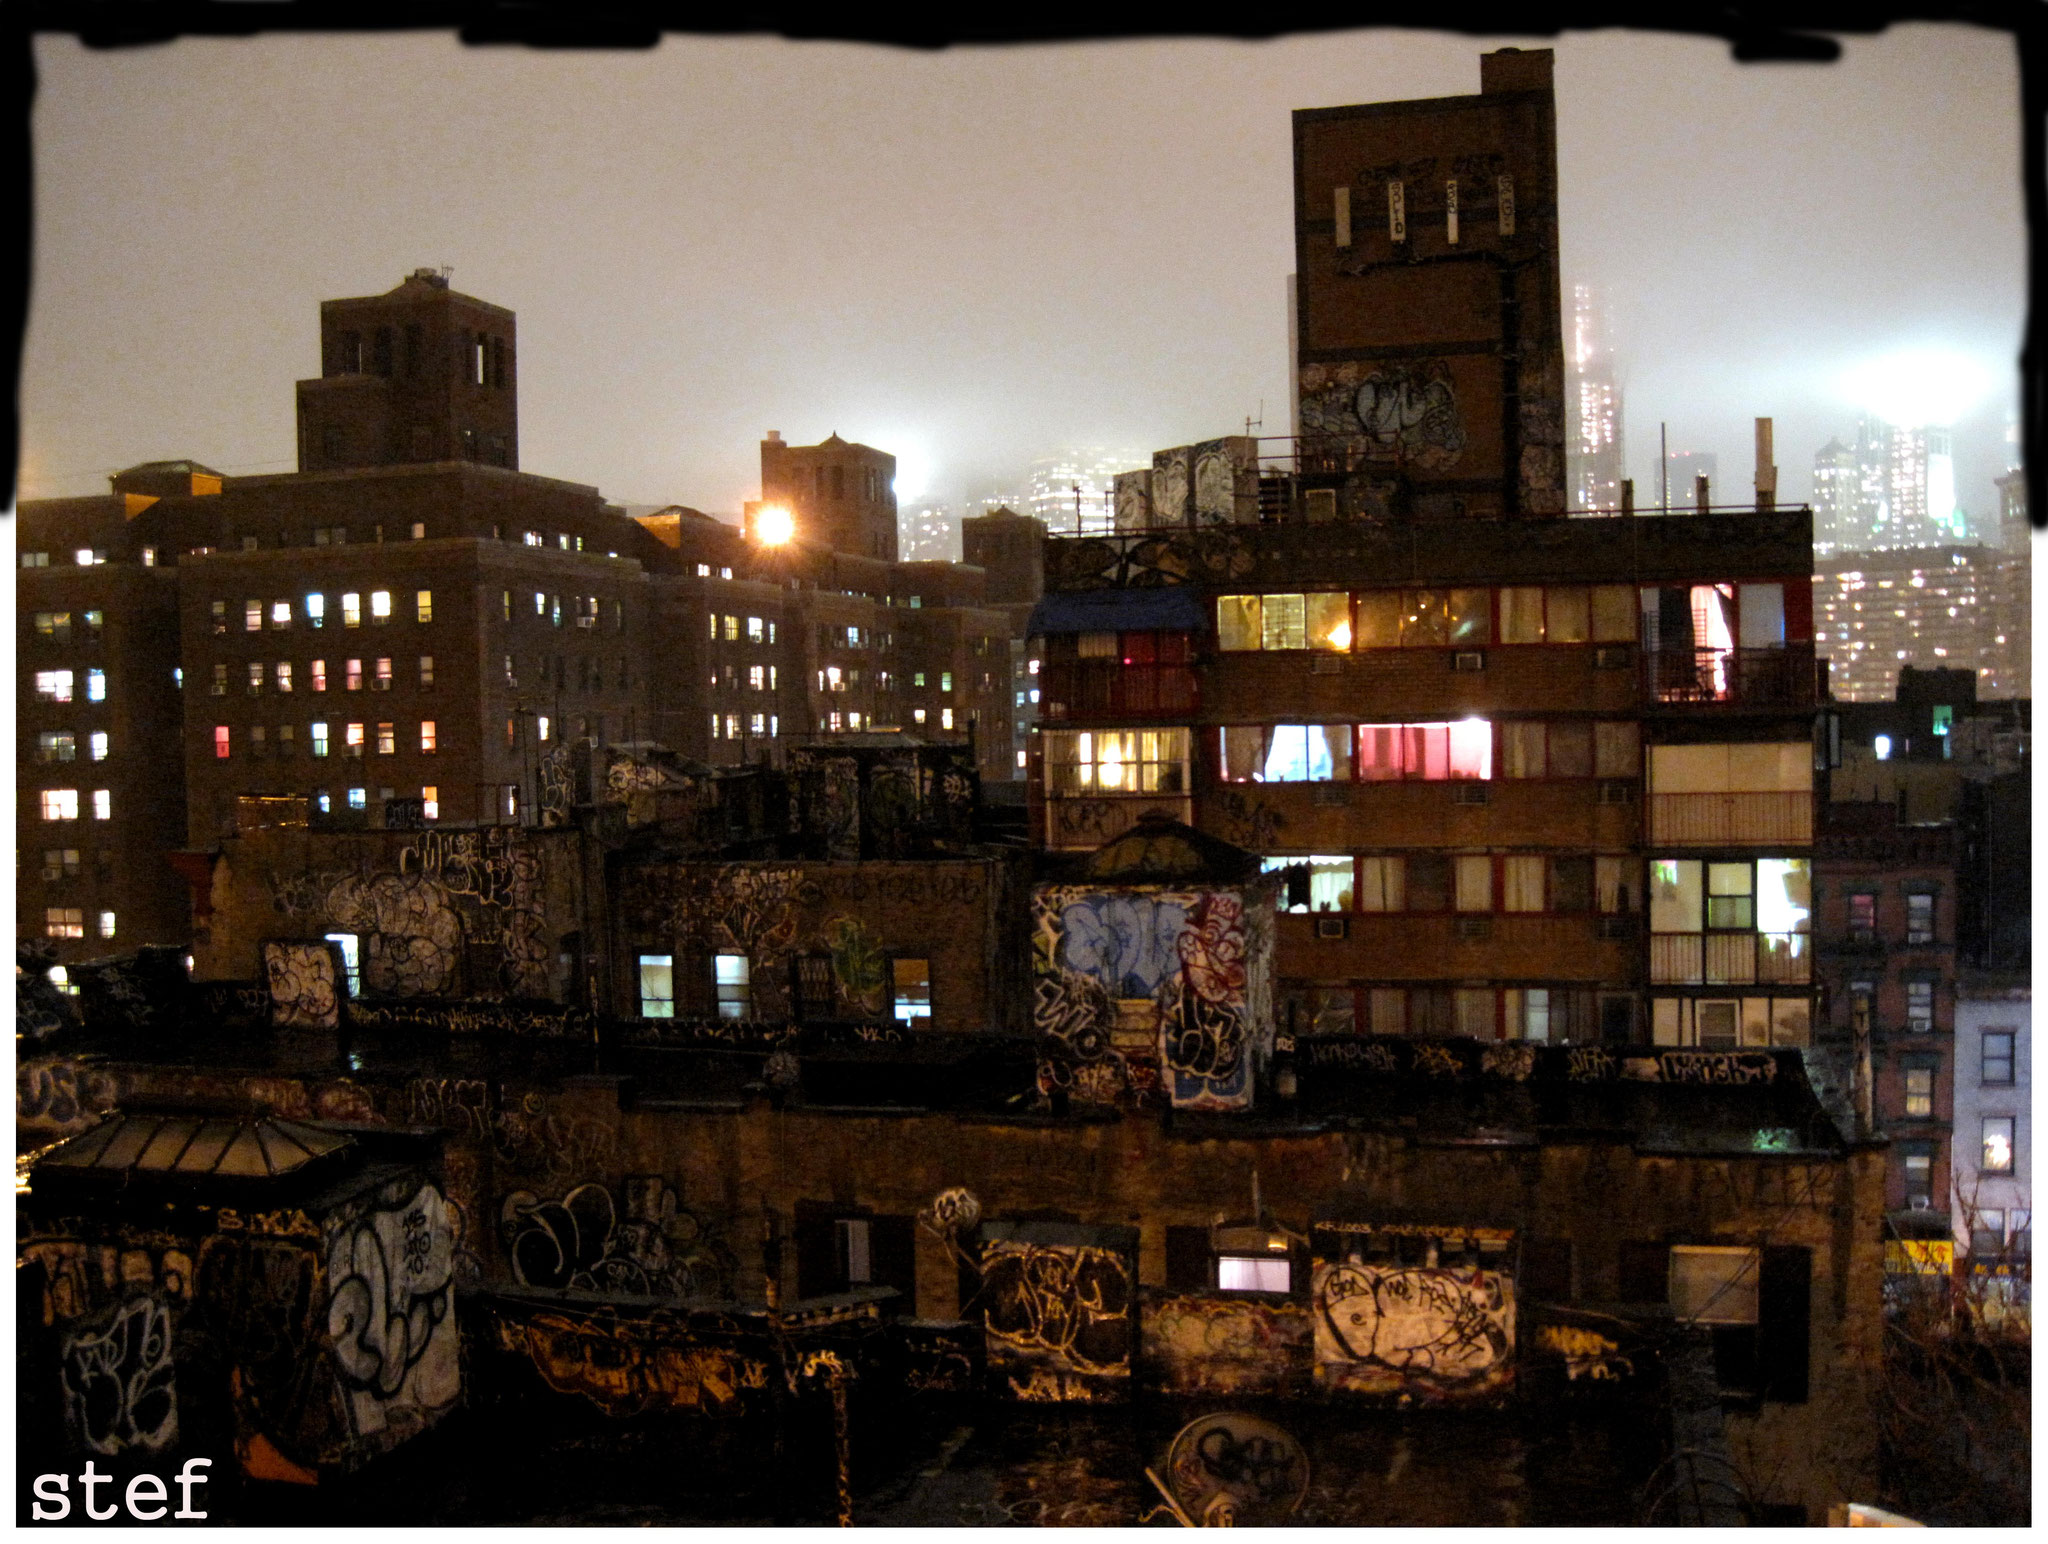 NYC - Williamsburg |All rights reserved|